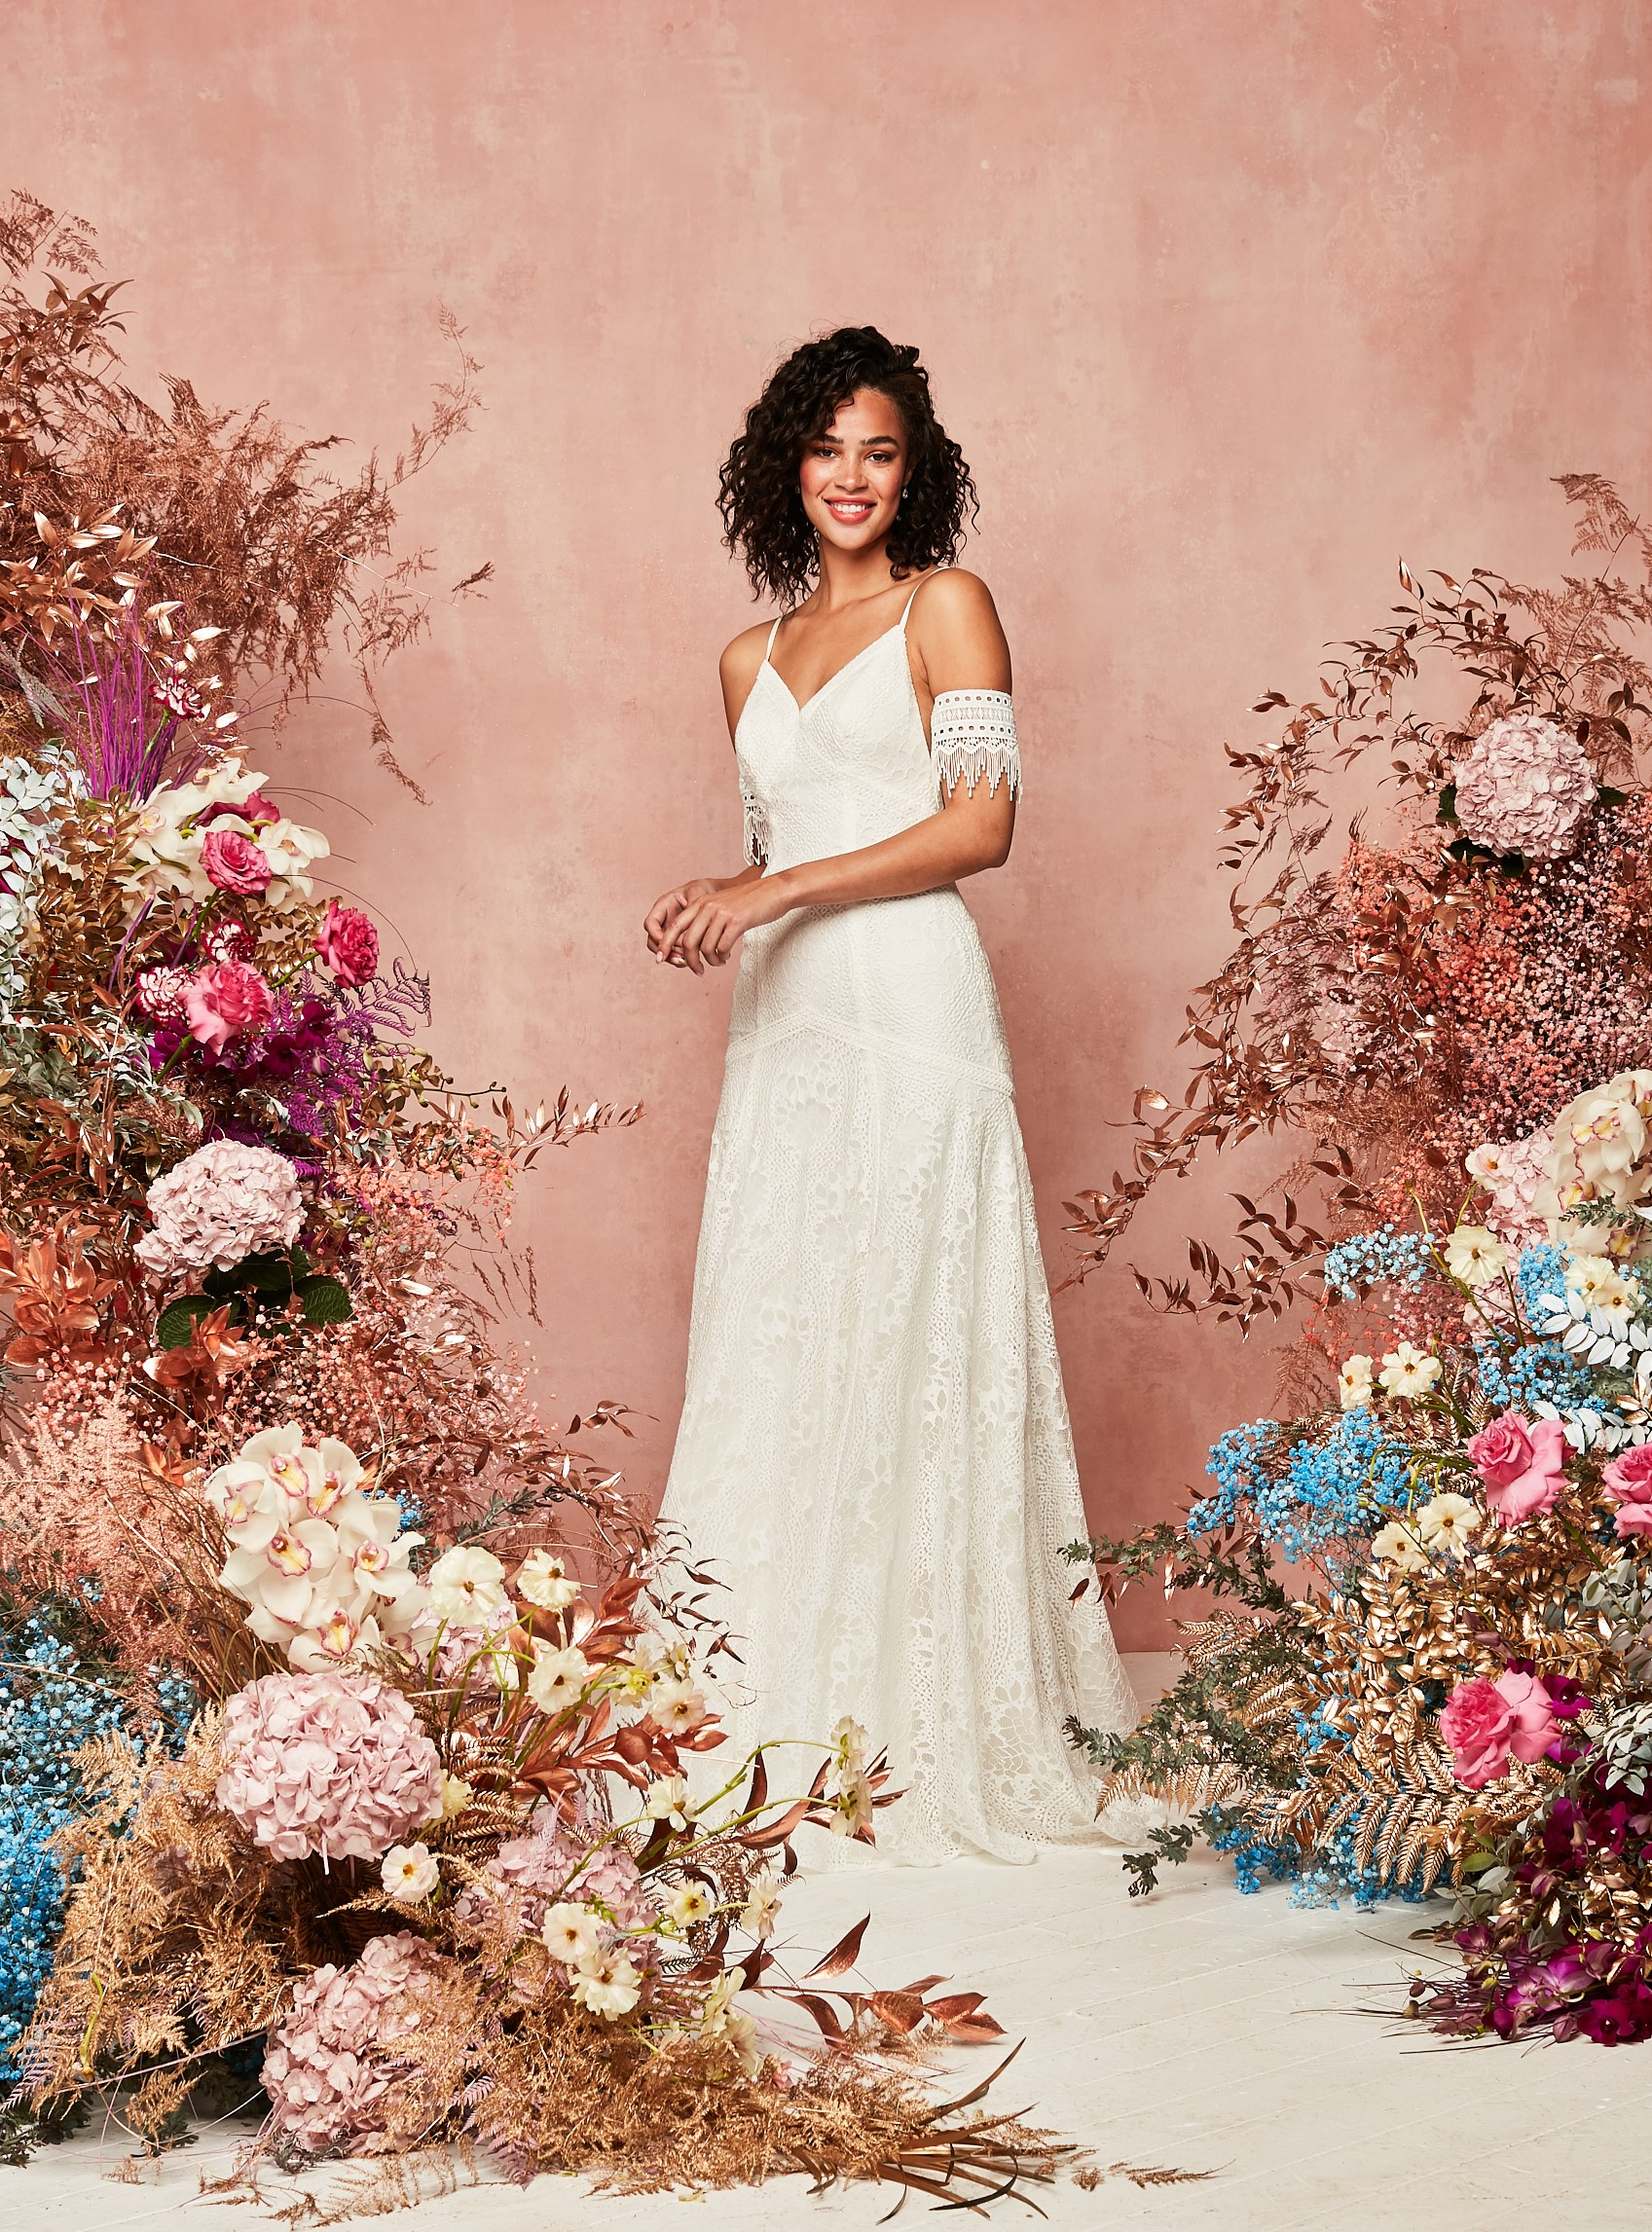 boho lace wedding dress from David's Bridal Spring 2021 Collection